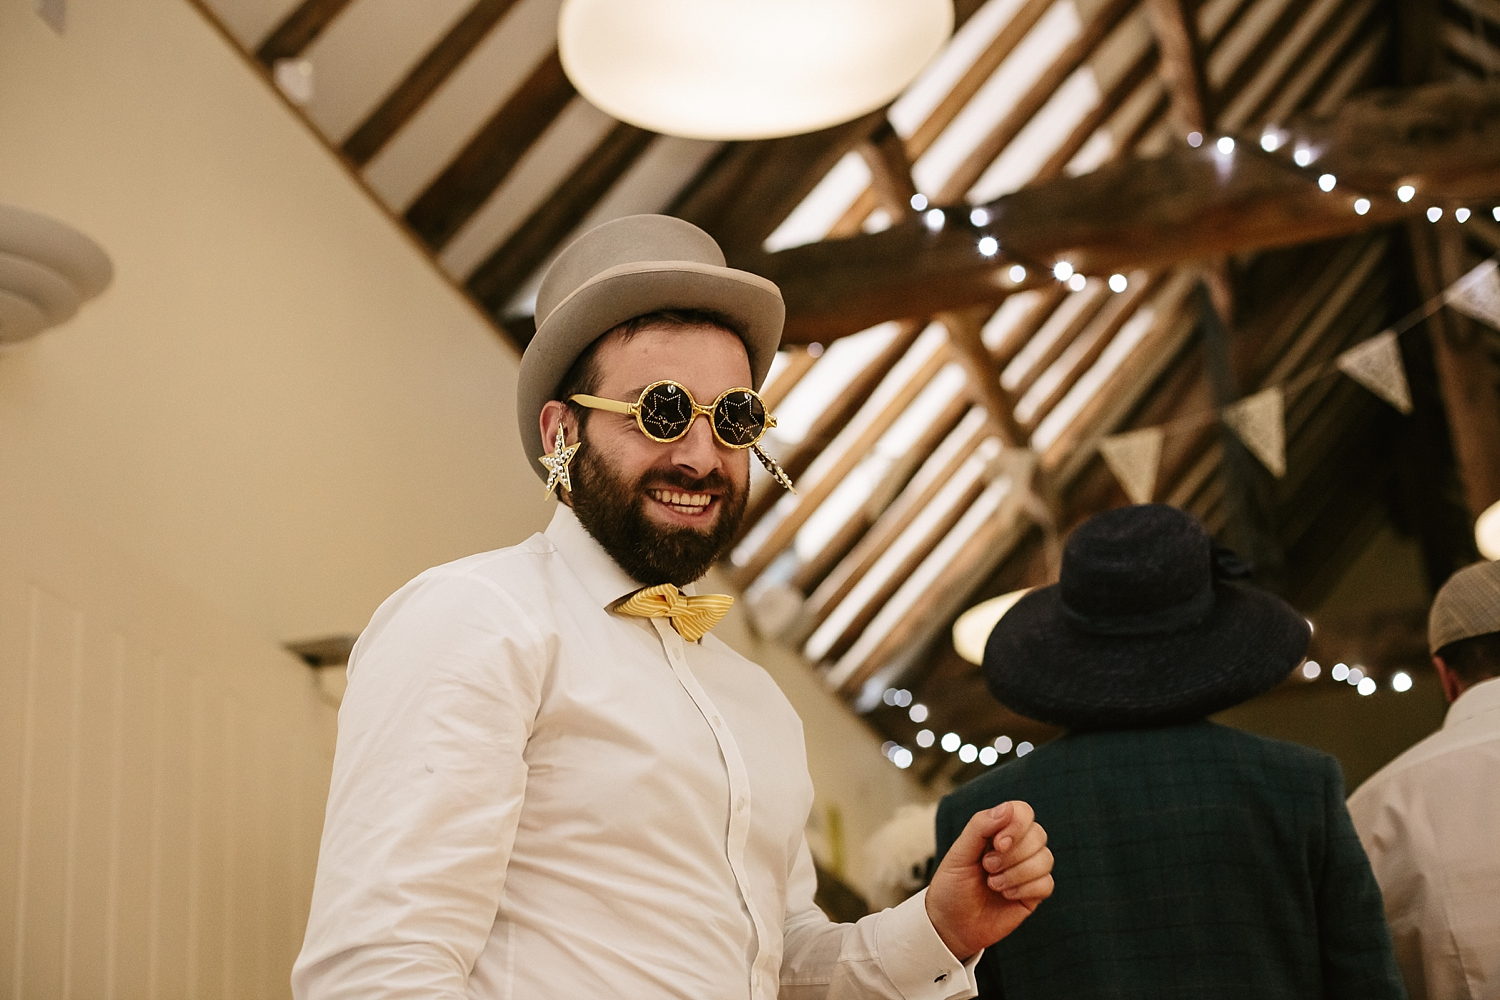 Natlie-Matthew-yorkshire-natural-relaxed-fun-documentary-reportage-candid-wedding-photography-photographer-Derby-Nottingham-Derbyshire-Nottinghamshire-Leicestershire-Lincolnshire-East-Midlands-94.jpg